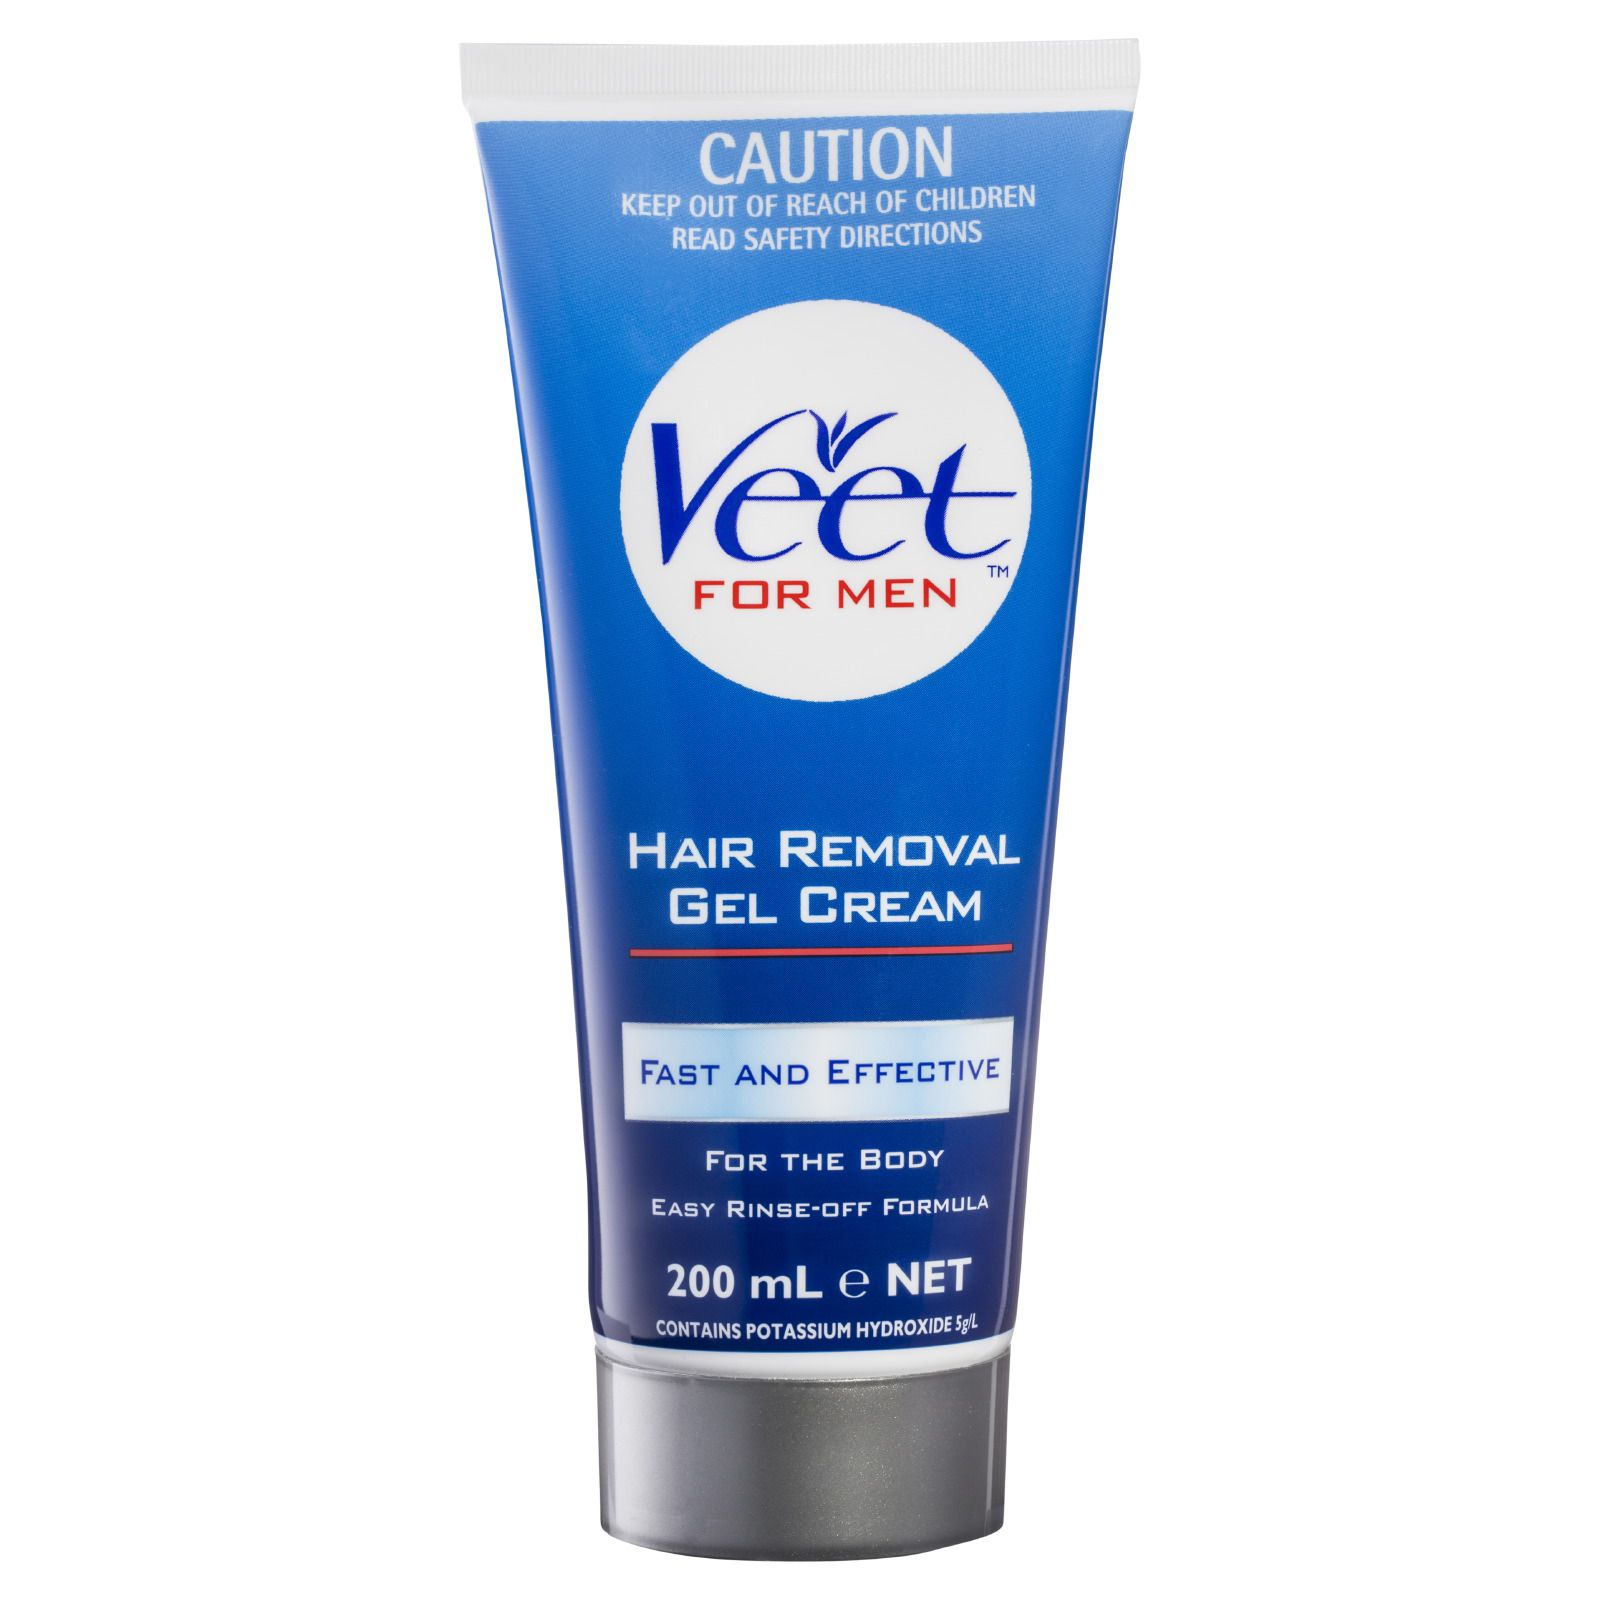 Veet For Men Hair Removal Gel Cream For The Body Veet Australia